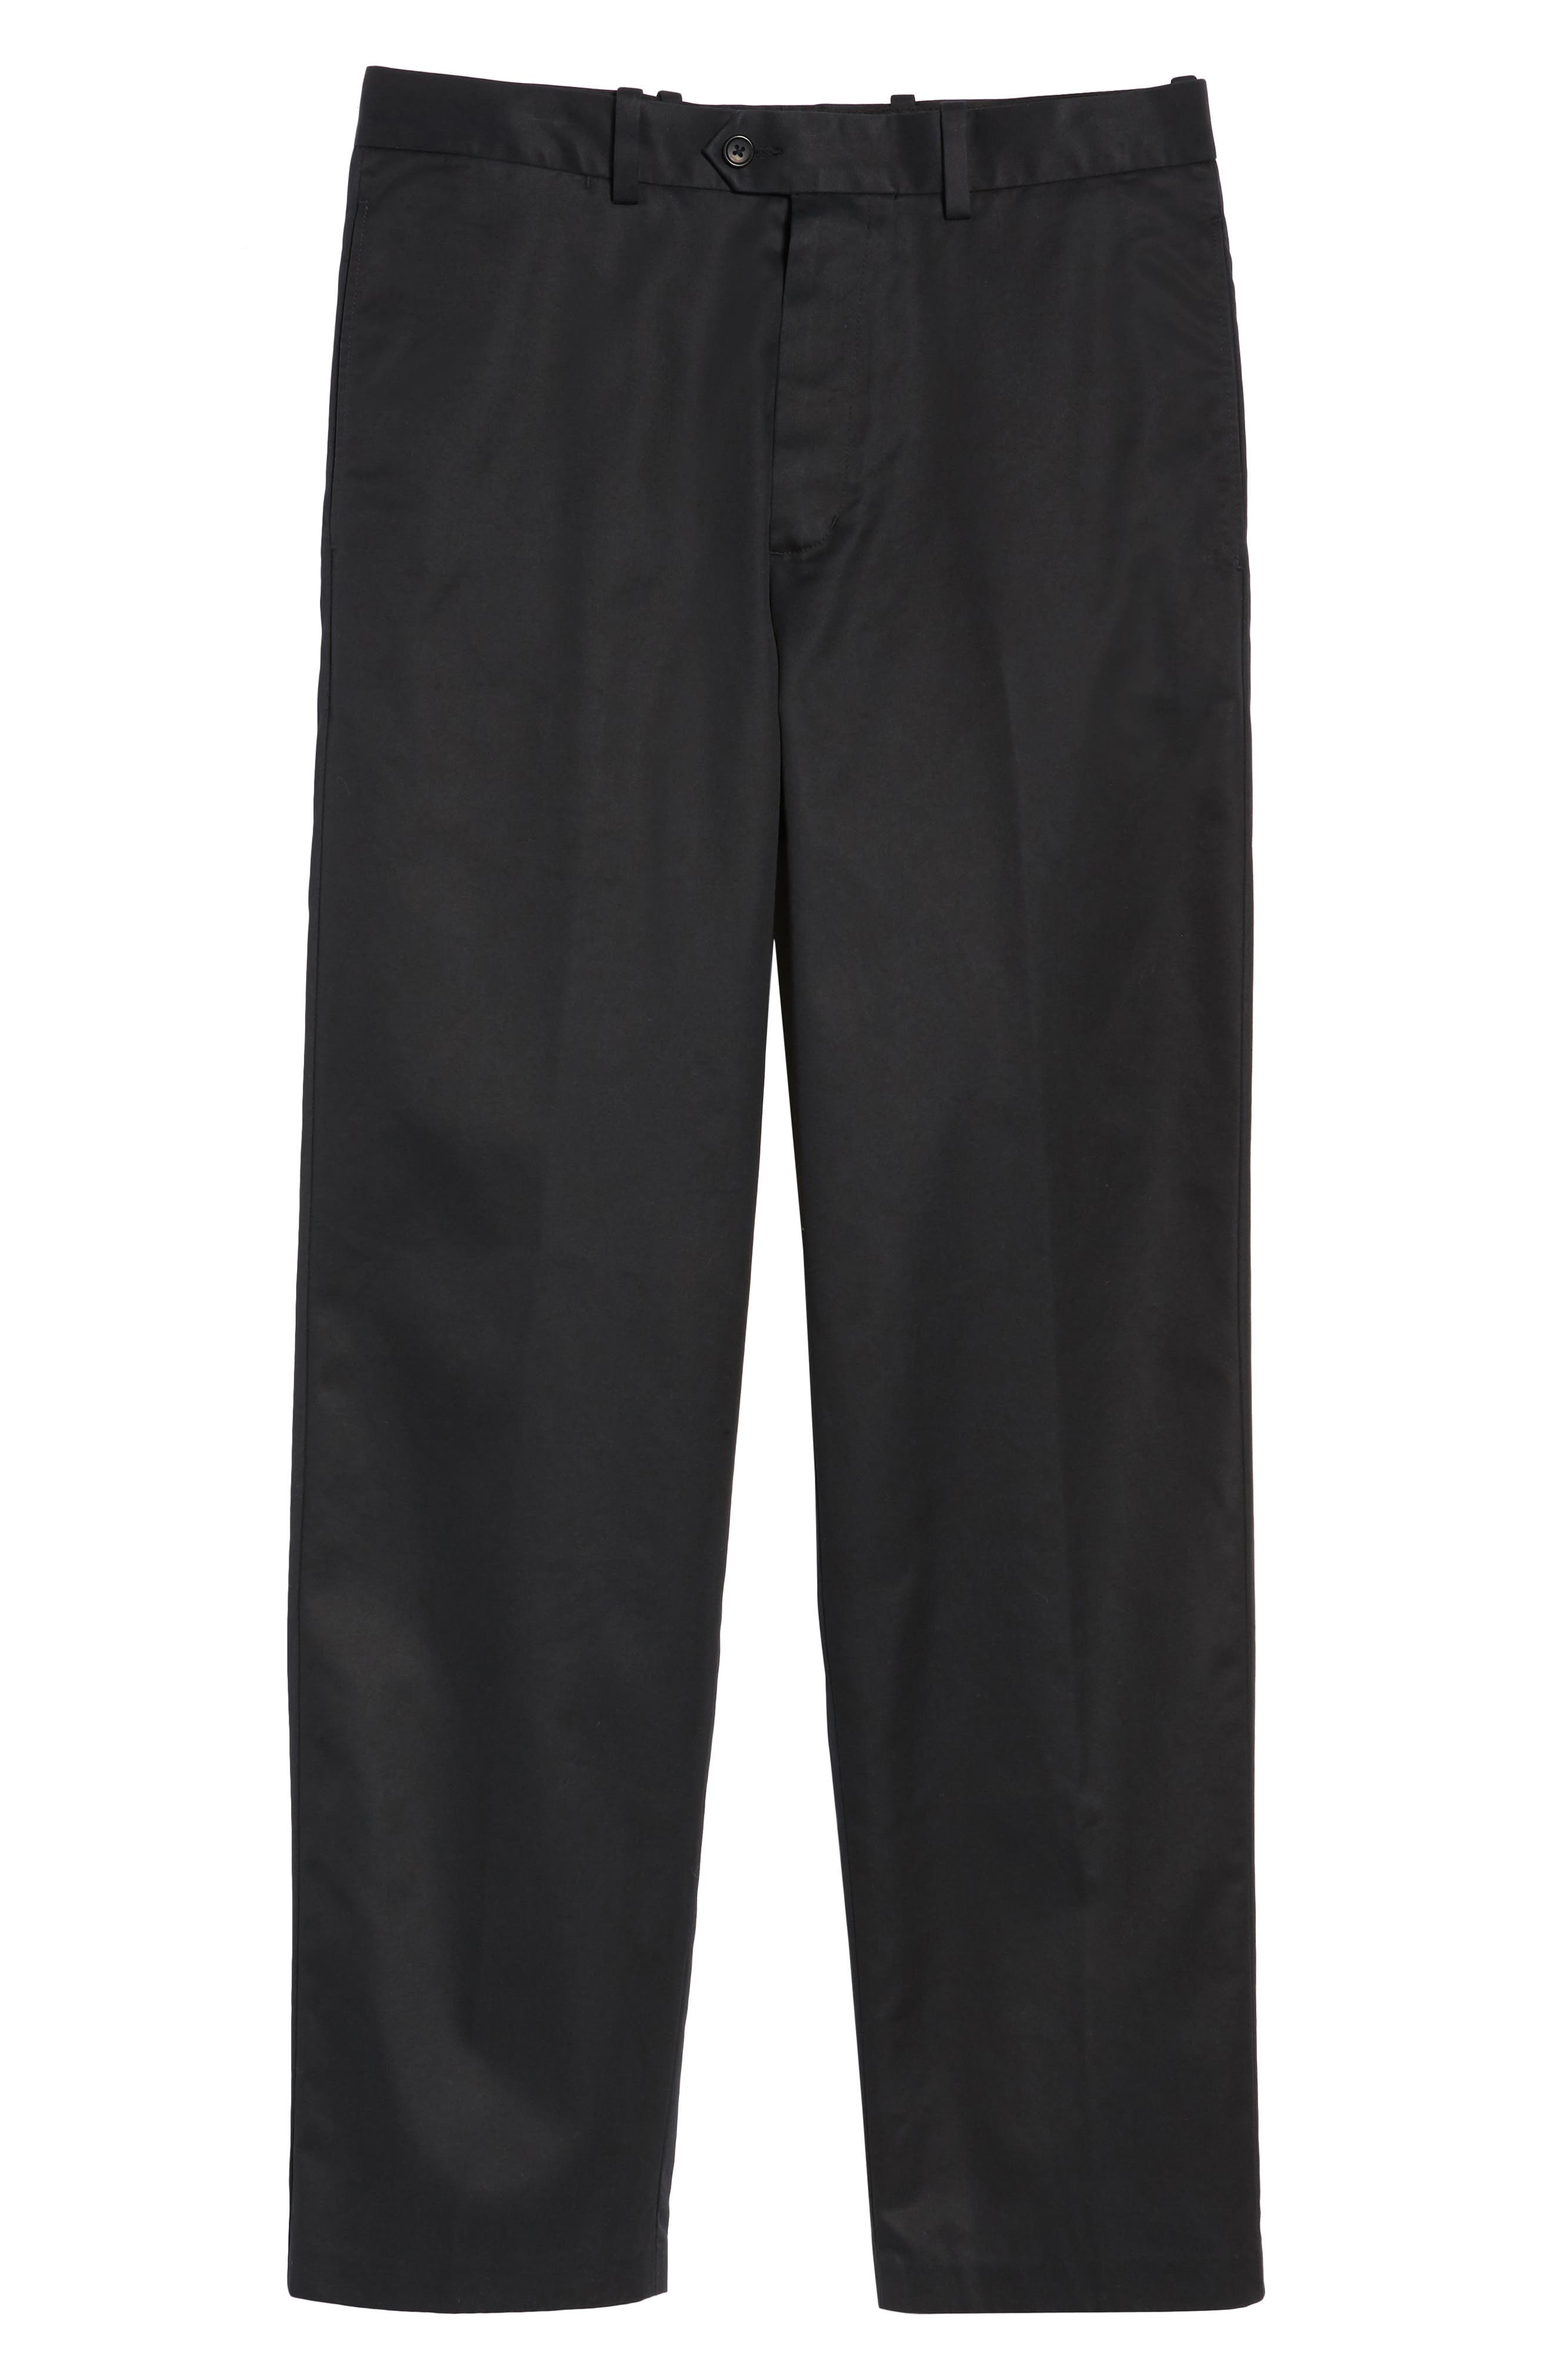 NORDSTROM MEN'S SHOP, Smartcare<sup>™</sup> Classic Supima<sup>®</sup> Cotton Flat Front Trousers, Main thumbnail 1, color, BLACK CAVIAR